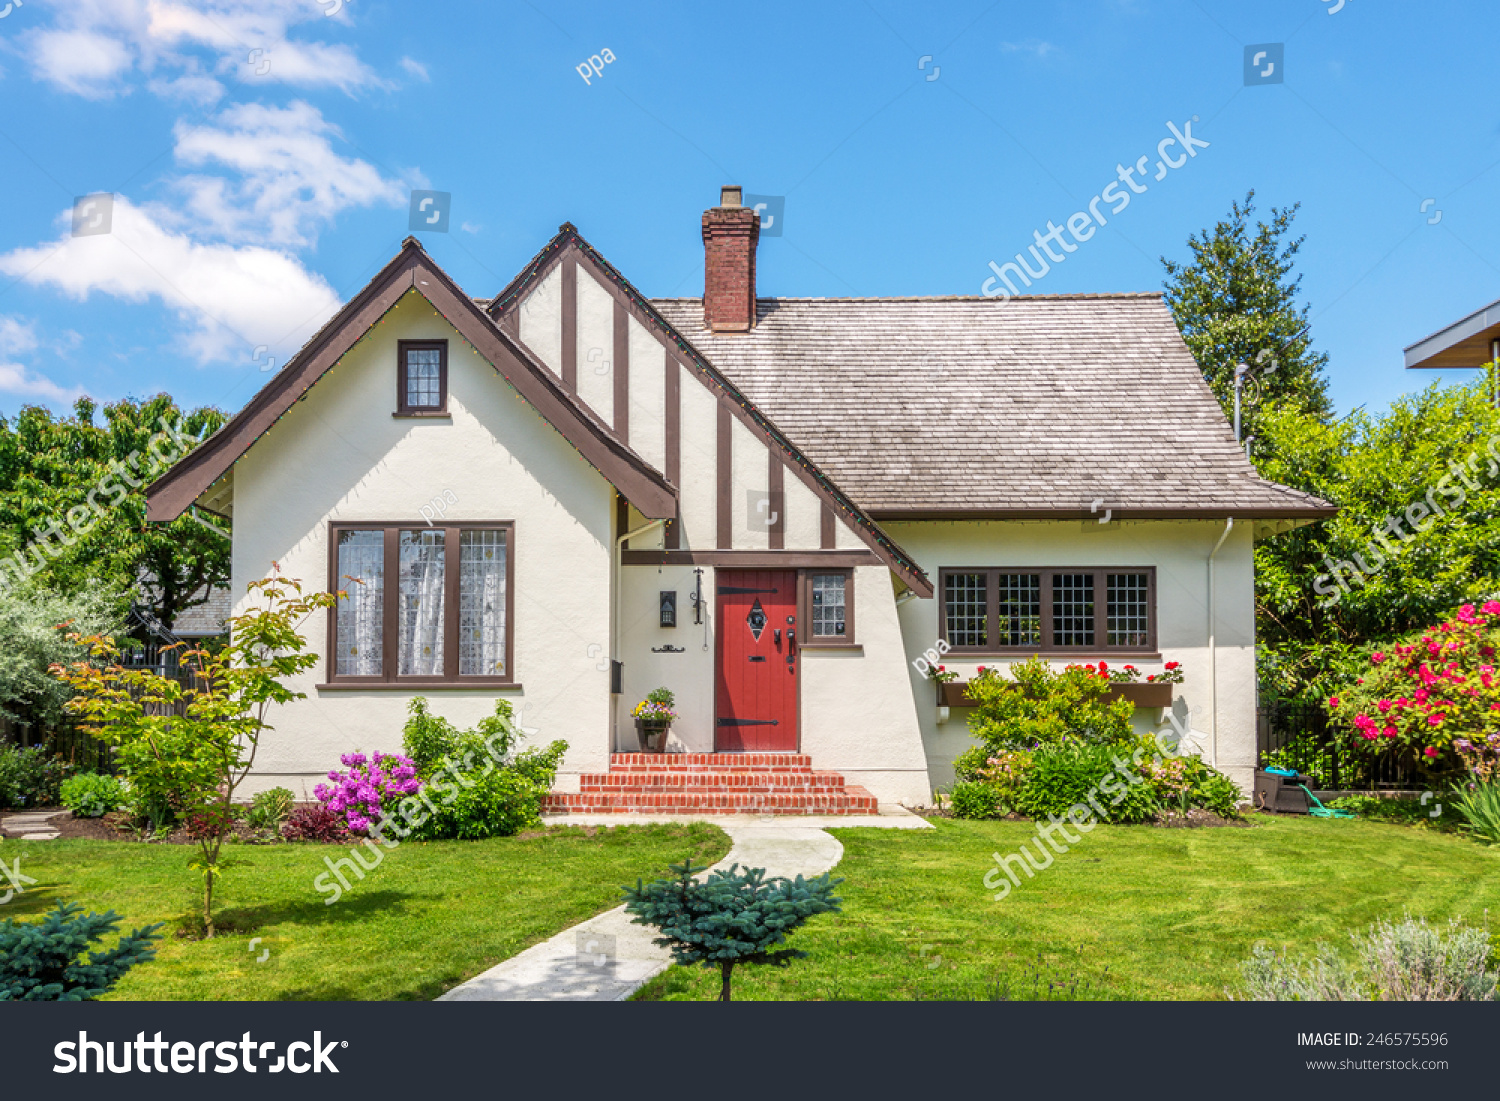 Cozy house with beautiful landscaping on a sunny day home for Pictures of cozy homes